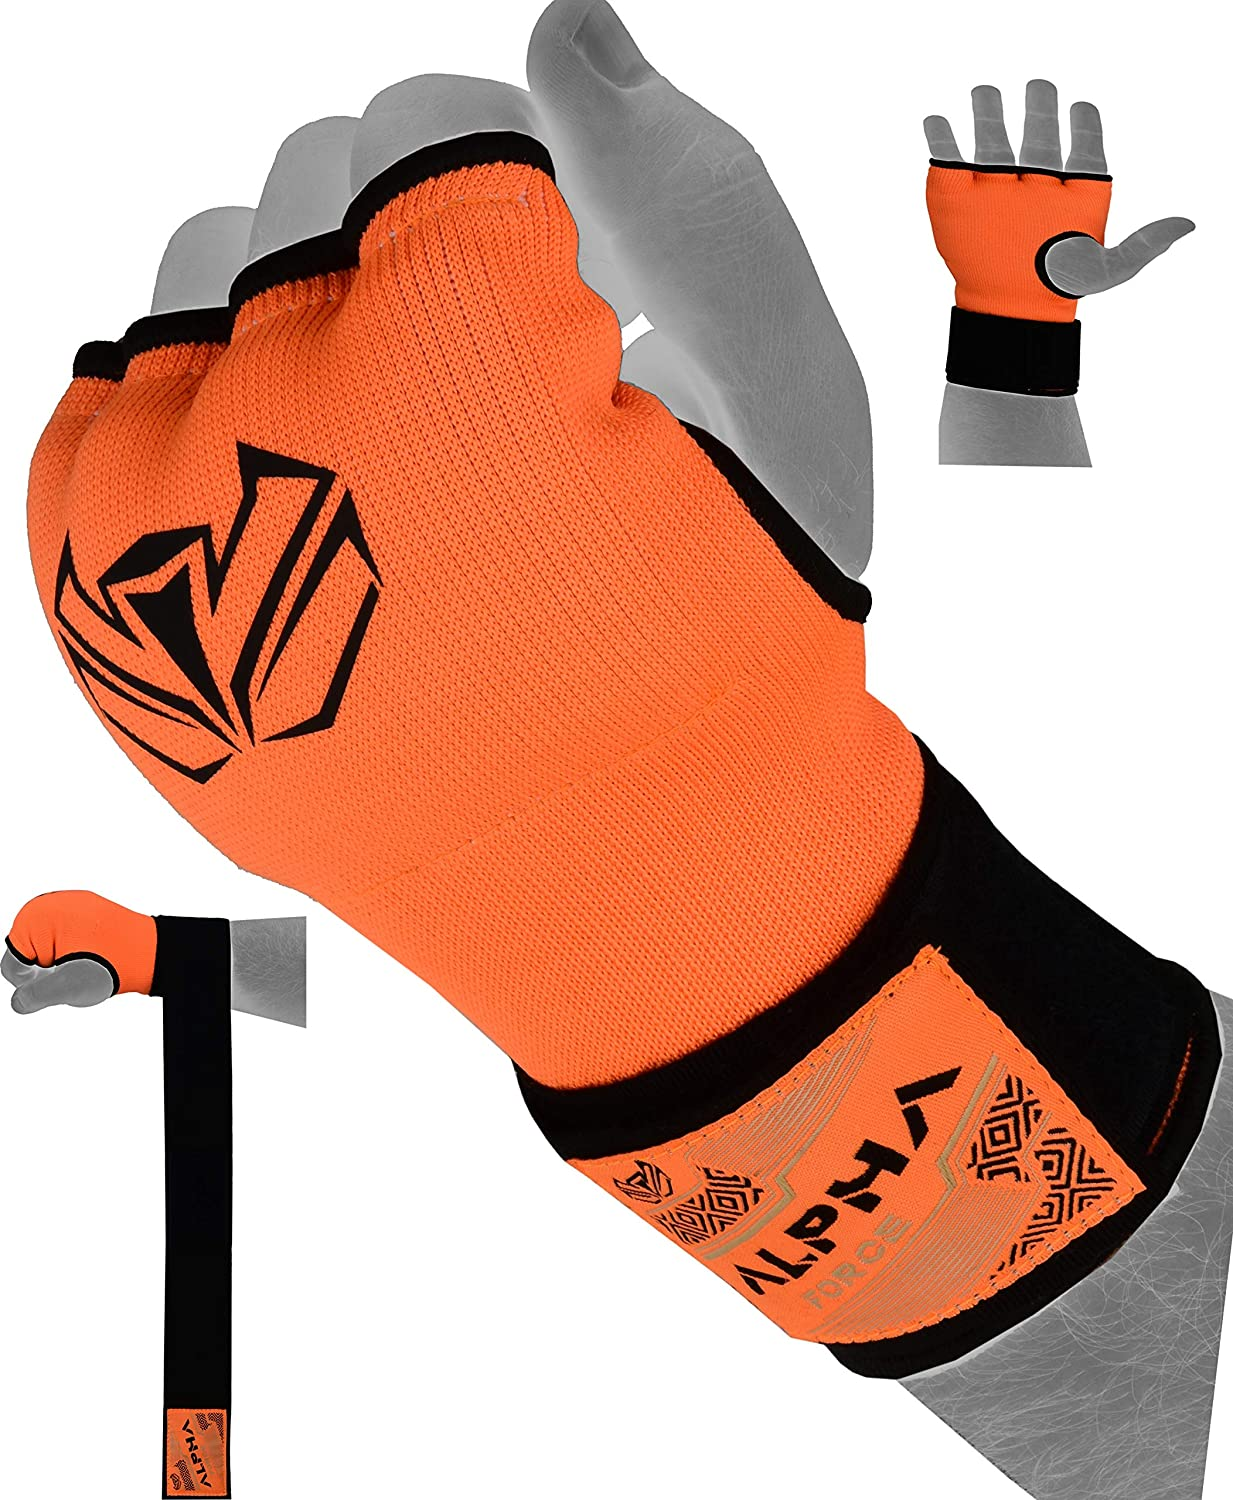 ALPHA FORCE Hand Wraps Inner Boxing Gloves Gel Mitts MMA Martial Arts MMA Fist Protector Bandages Mitts